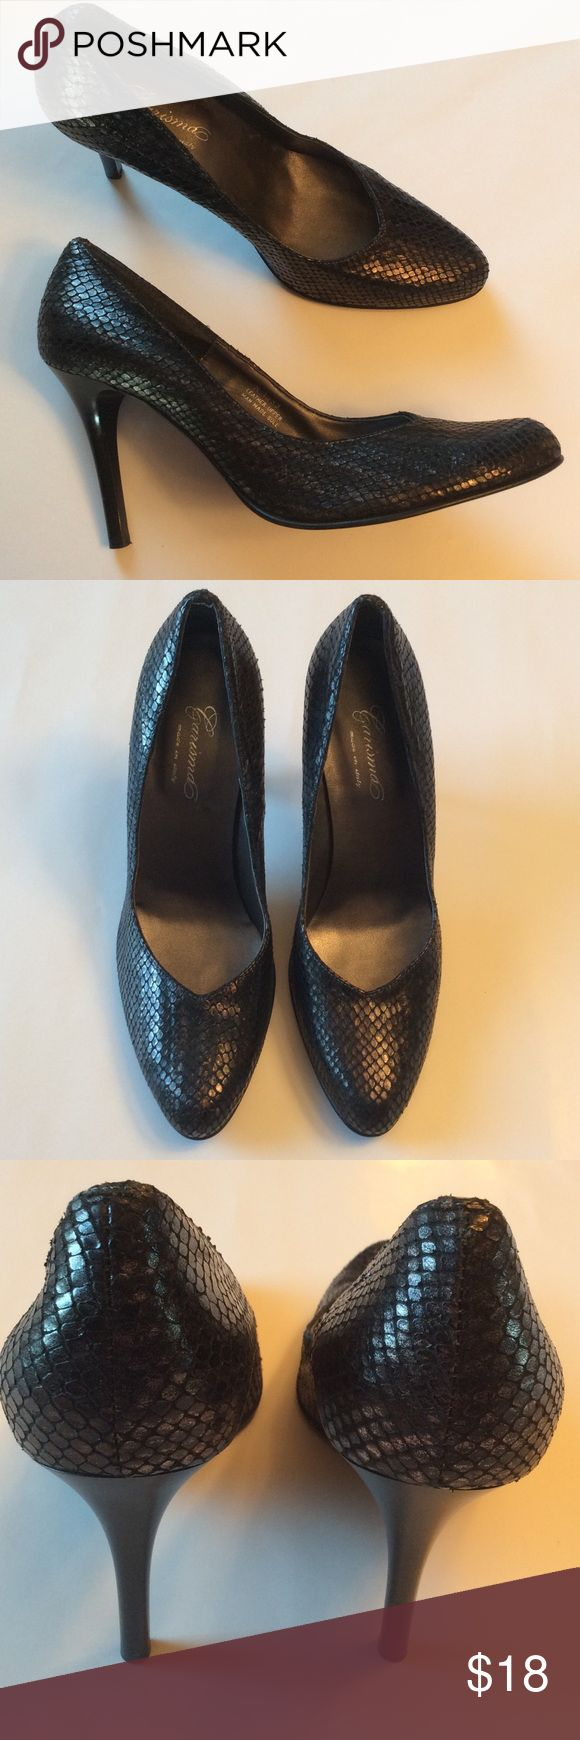 """Black Leather Metallic Pump Italian made black metallic leather pumps with snakeskin style finish. Great condition. 3.5"""" Heel. No box but will be wrapped and shipped with care. Carisma Shoes Heels"""